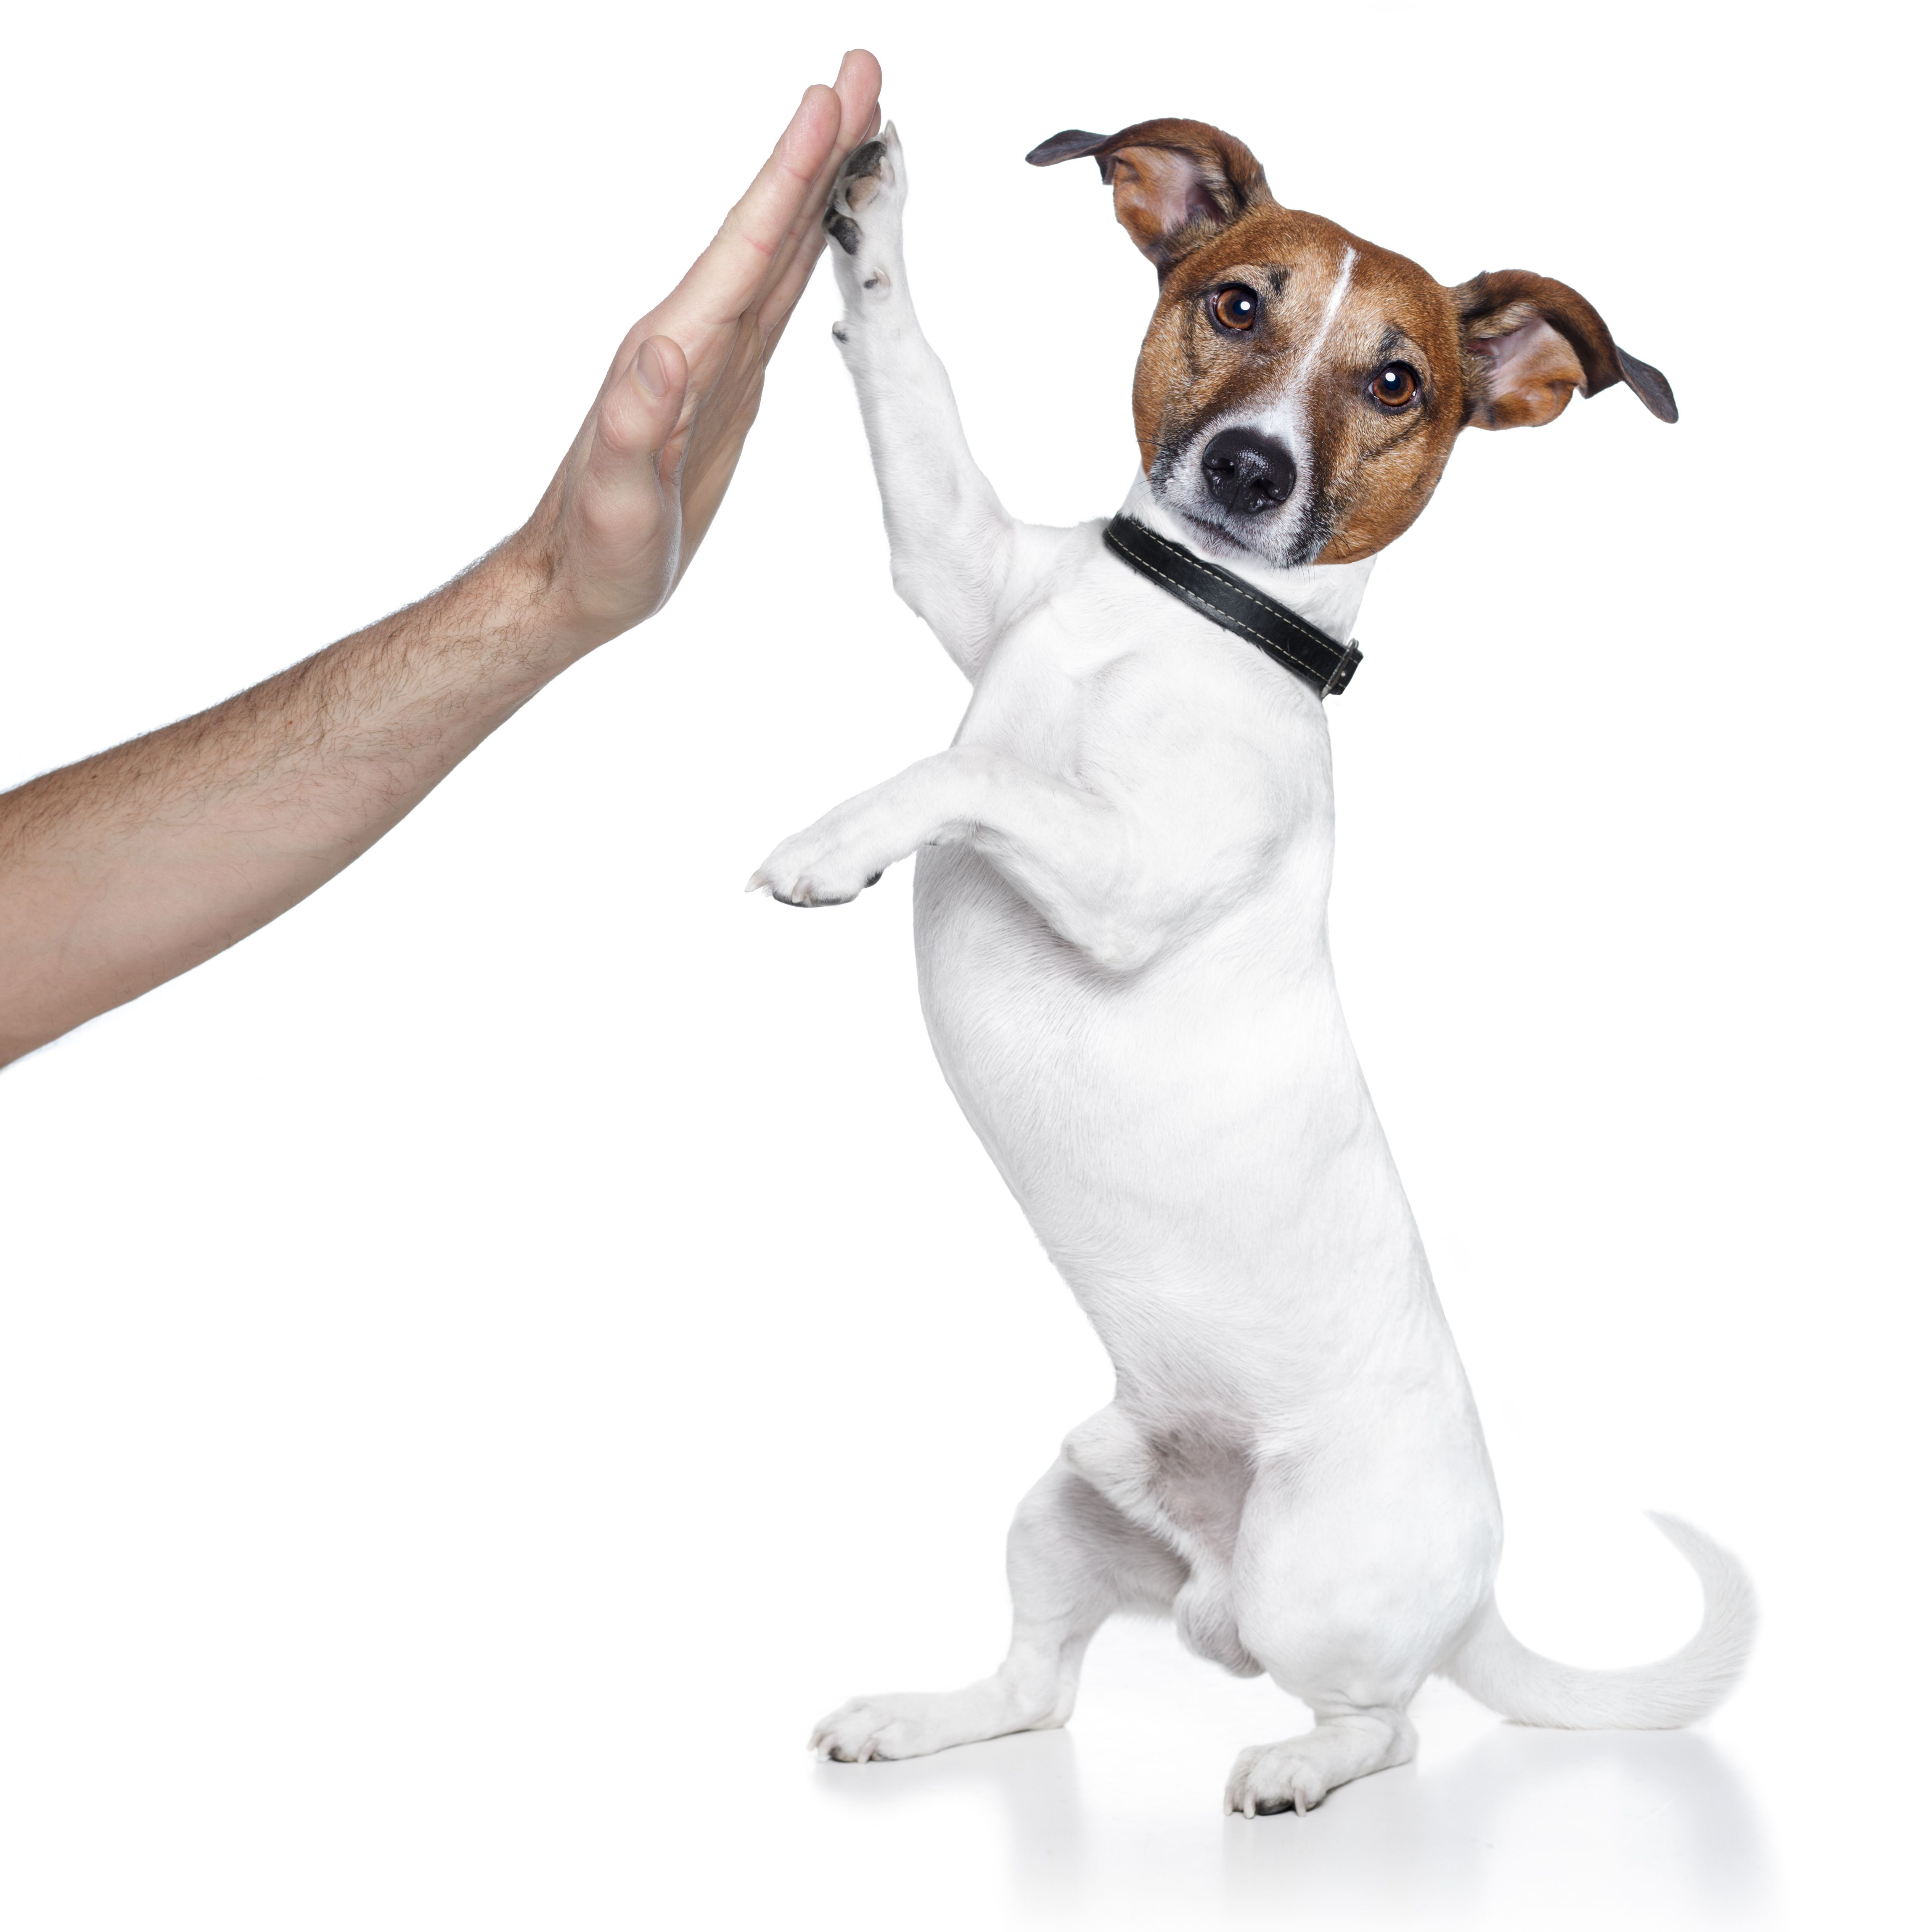 Learn How To Easily Train Your Puppy Dog To Sit Heel Down And Even Cross Its Paws Training Your Dog Dog Training Dog Training Tips